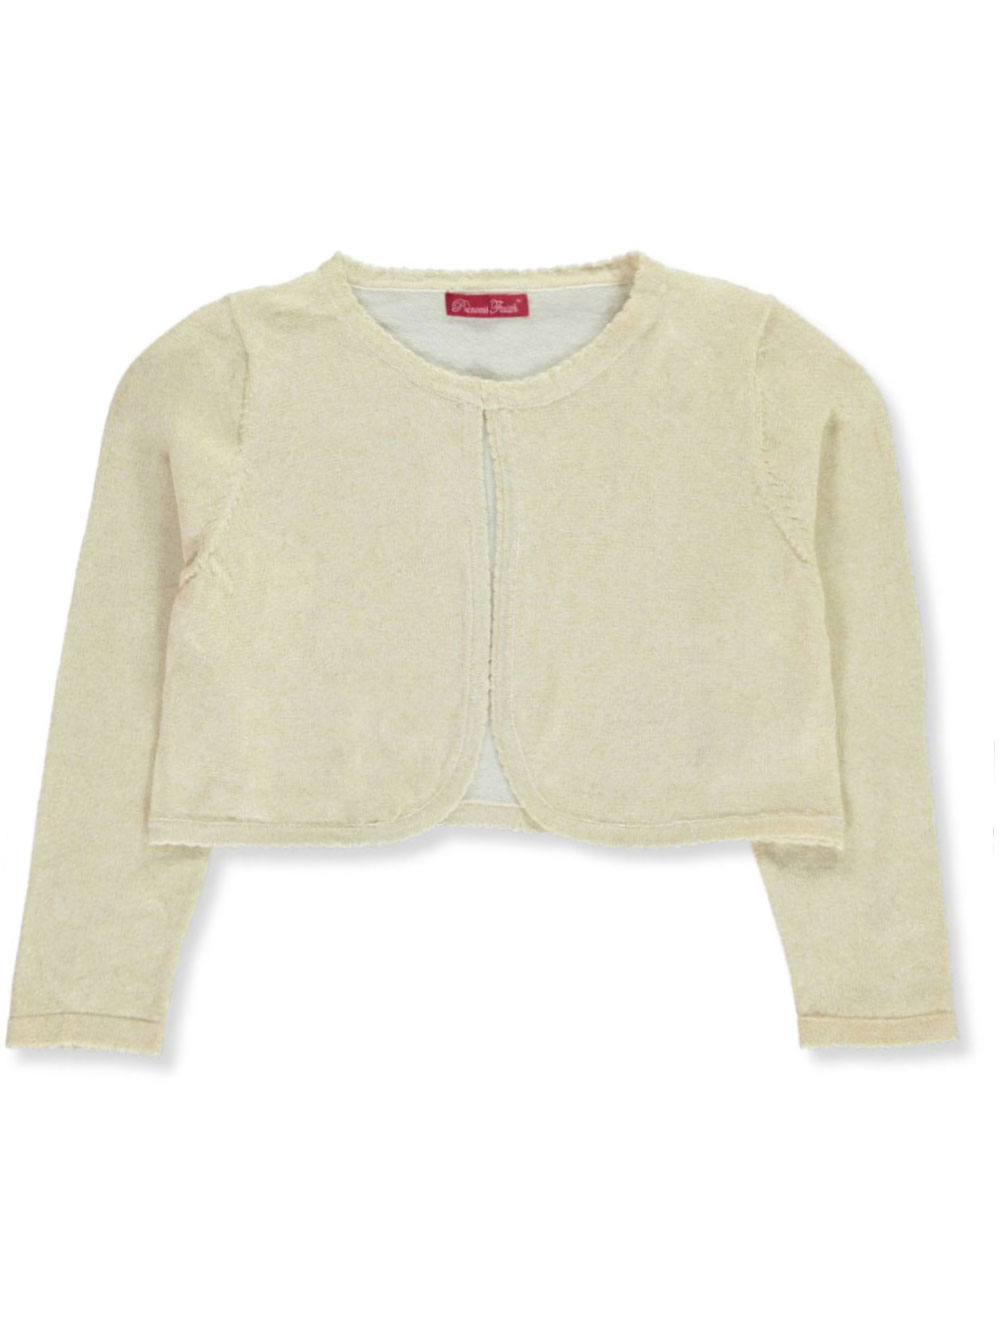 Size 8-10 Sweaters Shrugs for Girls